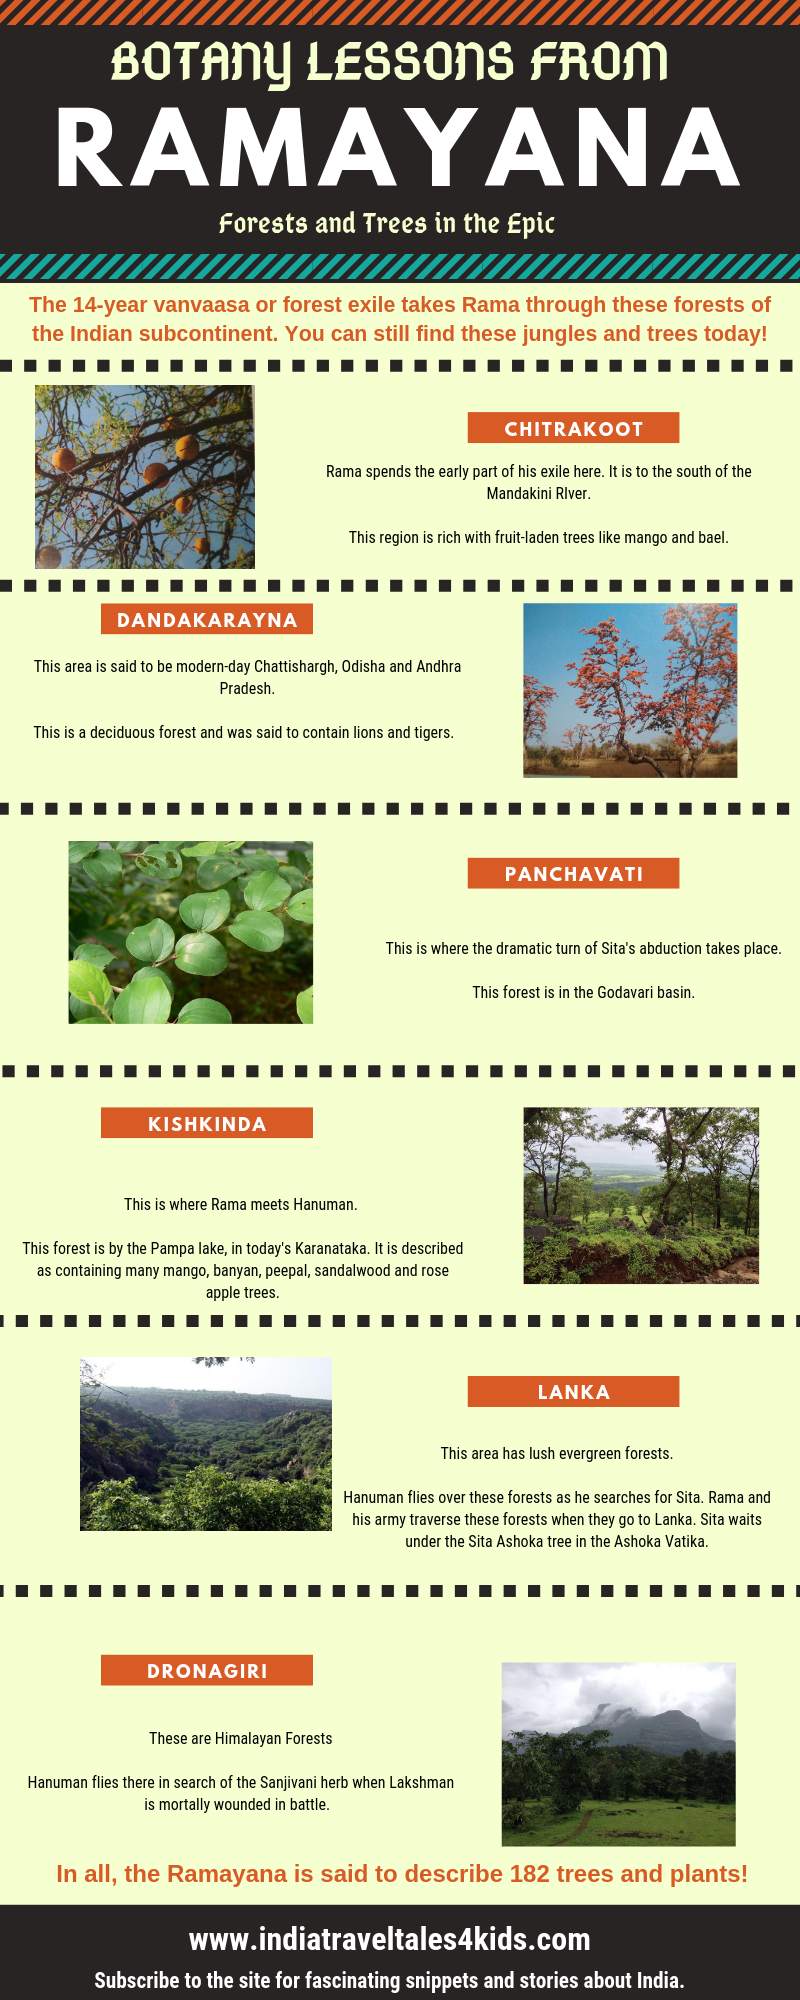 Botany Lessons from the RAMAYANA (1)